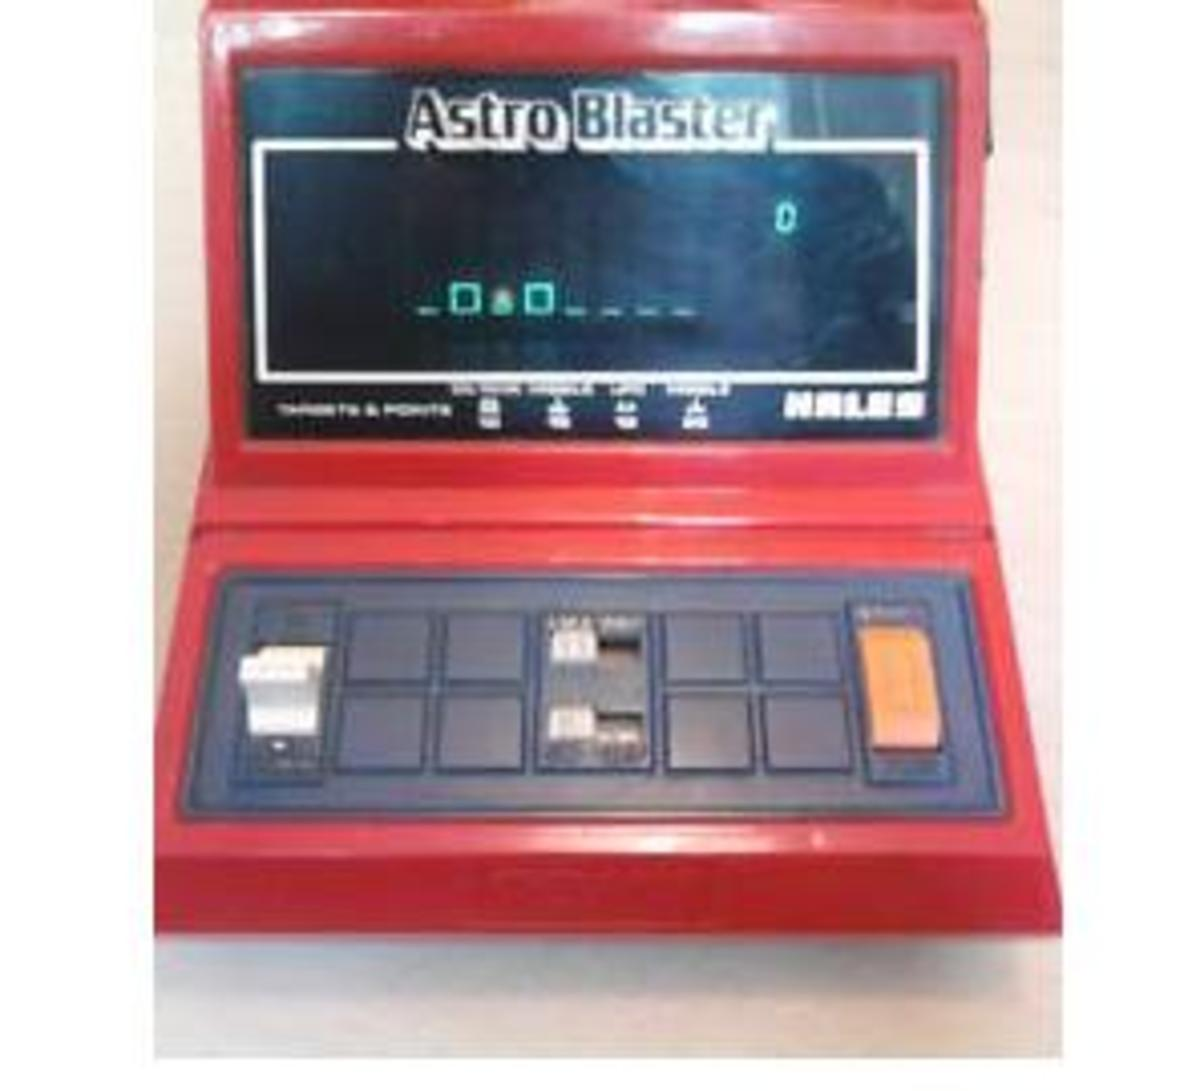 Astro Blaster was a table-top scramble clone from Hales / Tomy